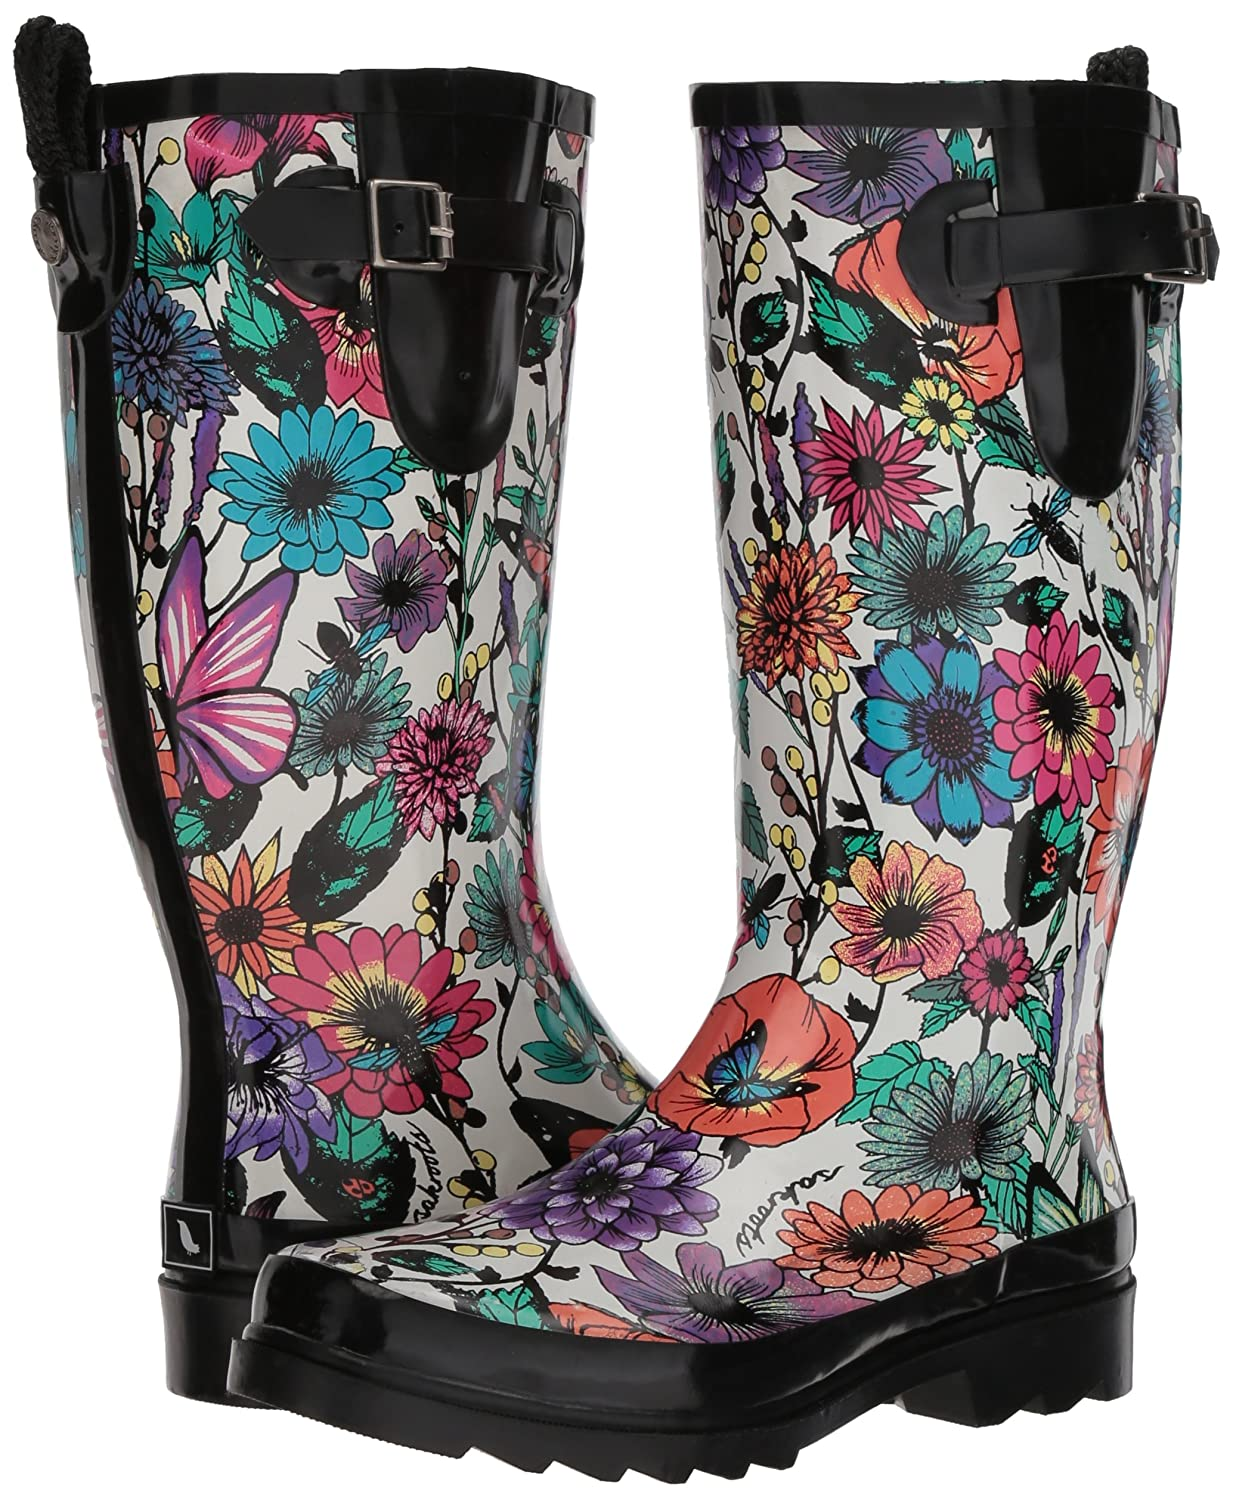 The Sak Women's US|Optic Rhythm Rain Boot B077ZGRQBW 7 B(M) US|Optic Women's in Bloom 7e66c1